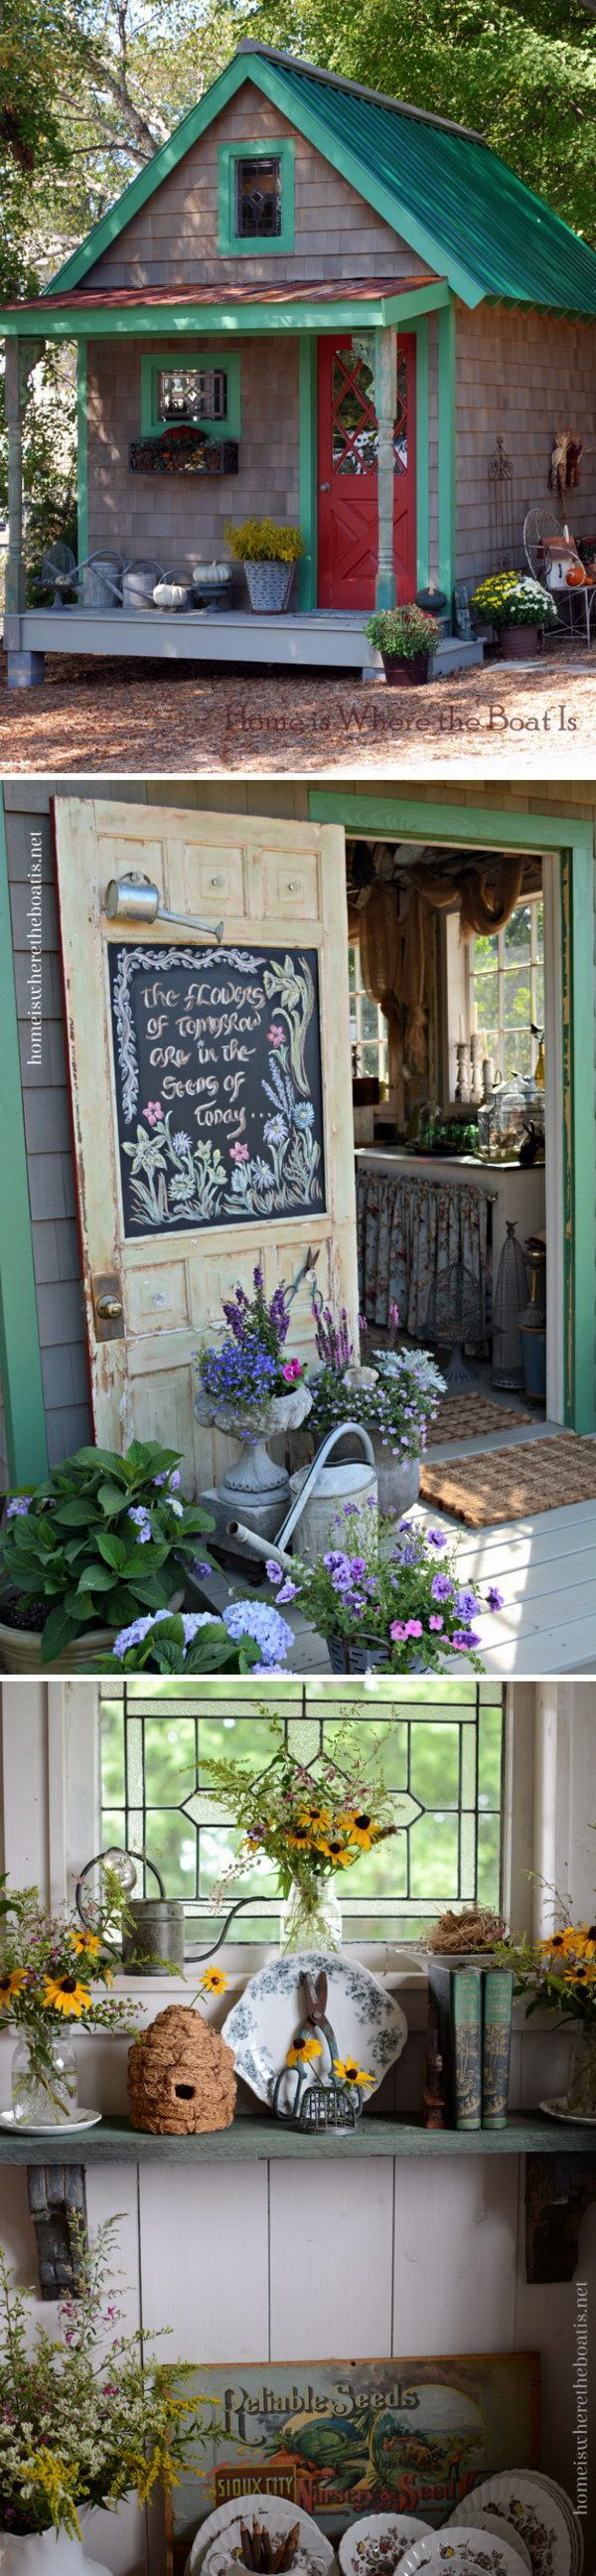 Acquiring a she-shed is exciting!  Decide what you wish your special hideaway for - what is the passion you are looking to have some alone time to enjoy?  Several different decors shown here... http://gailcorcoran.realtor #shesheds #typesofshesheds #makingasheshed